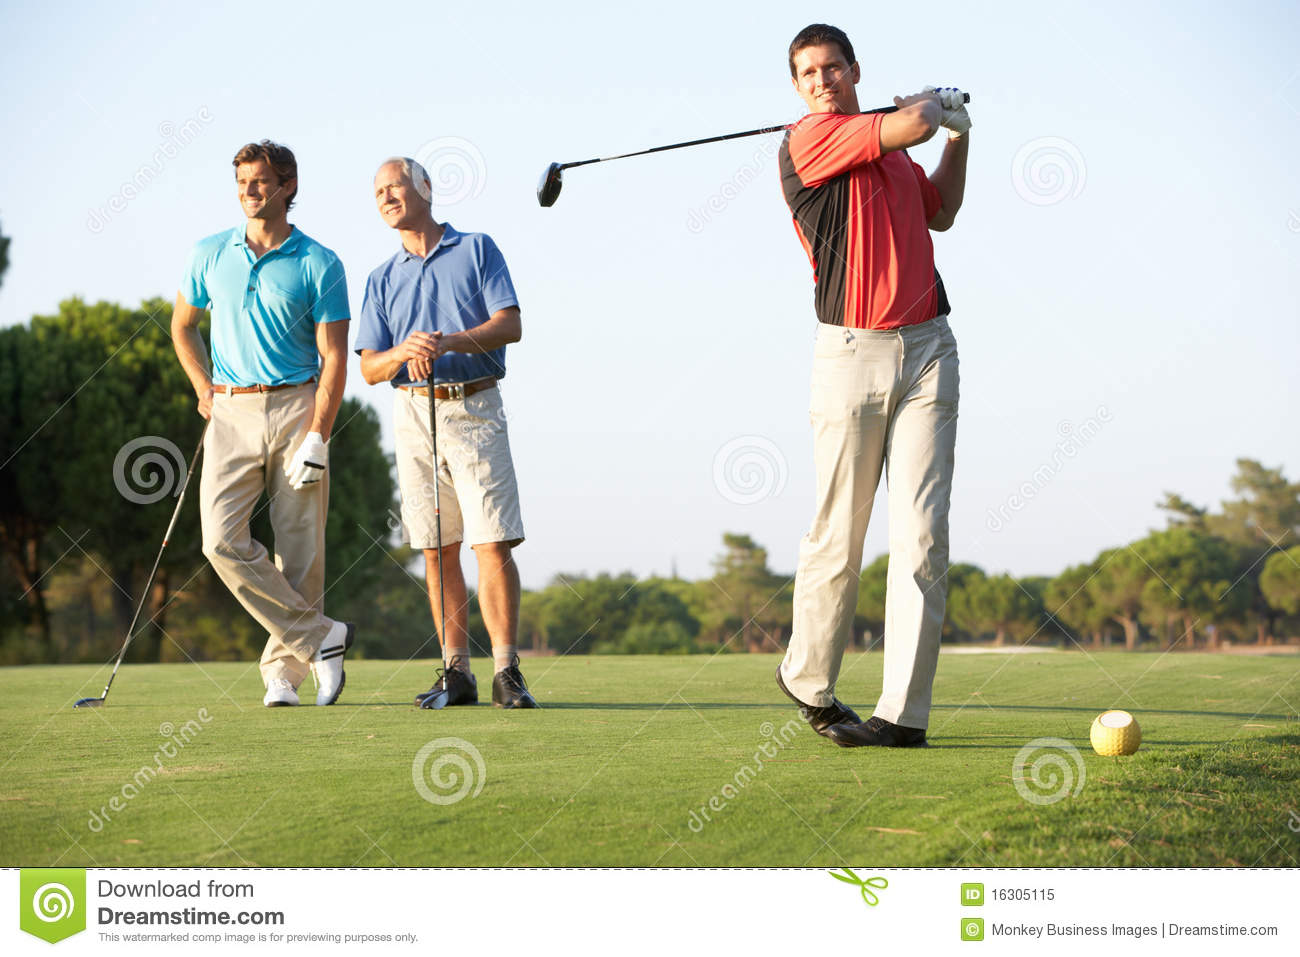 How to Play Golf - Learn to Play Golf Game Online